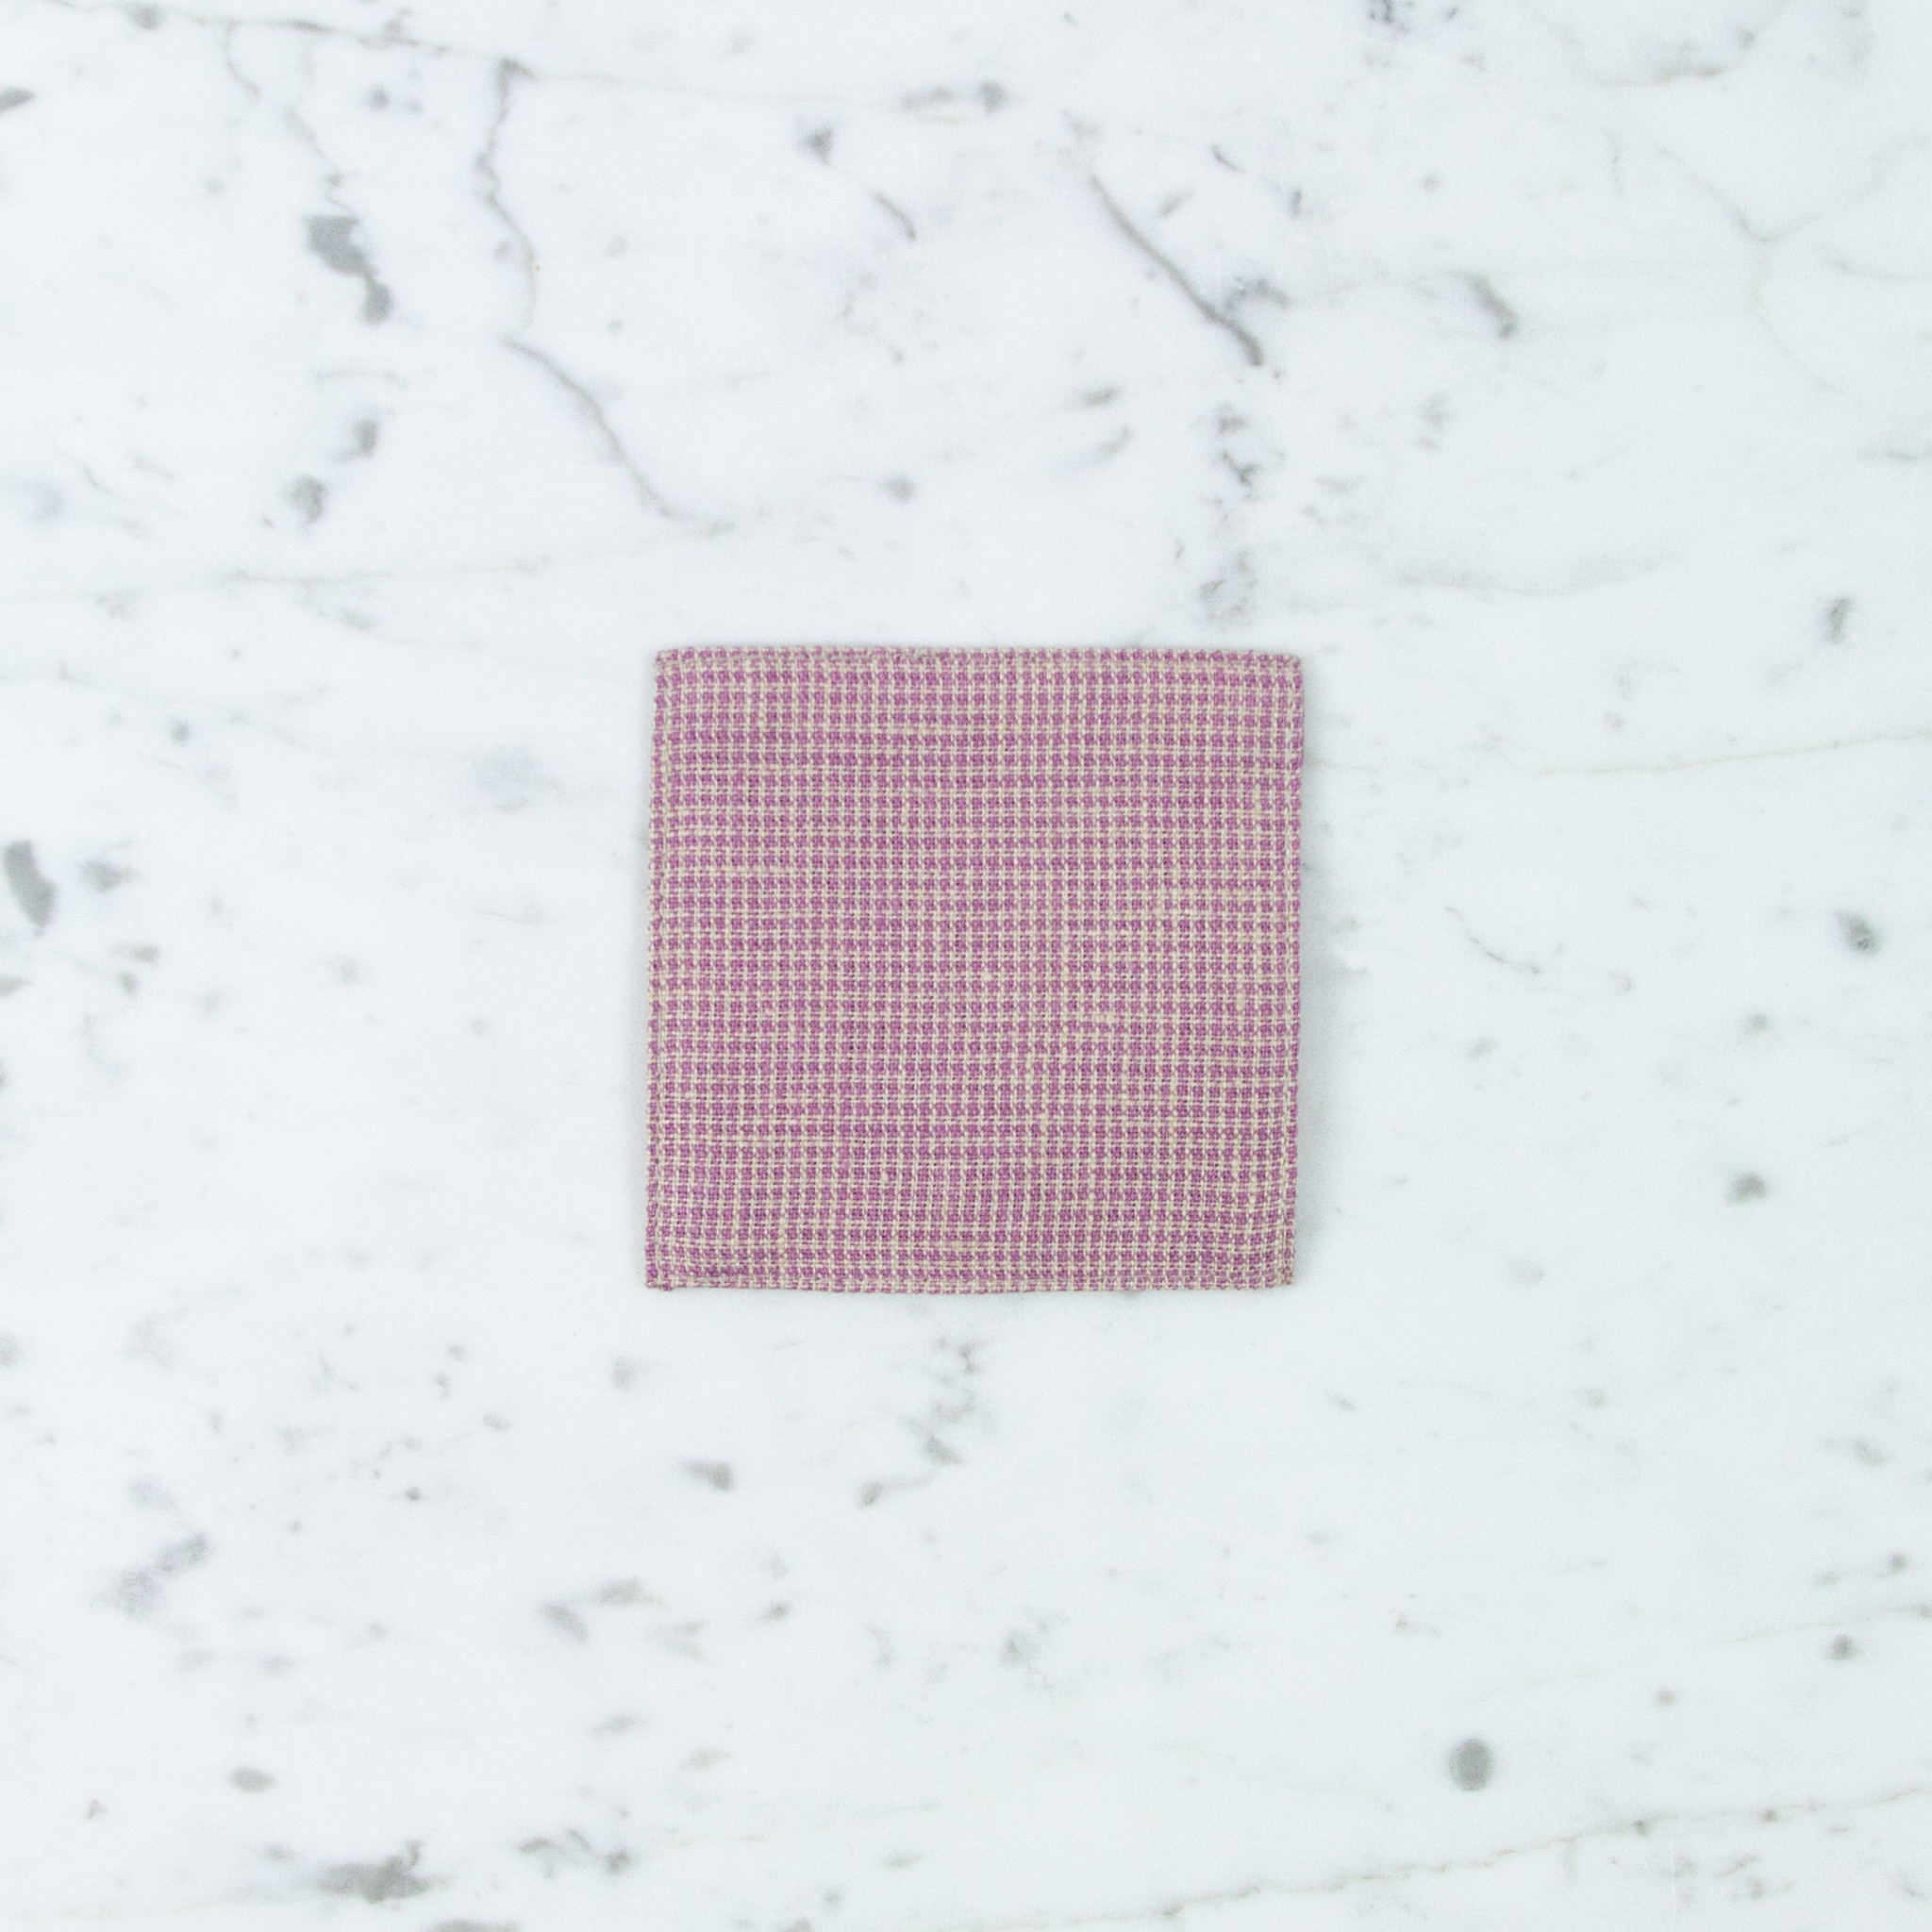 Lithuanian Linen Coaster - Emily Pink Mini Houndstooth